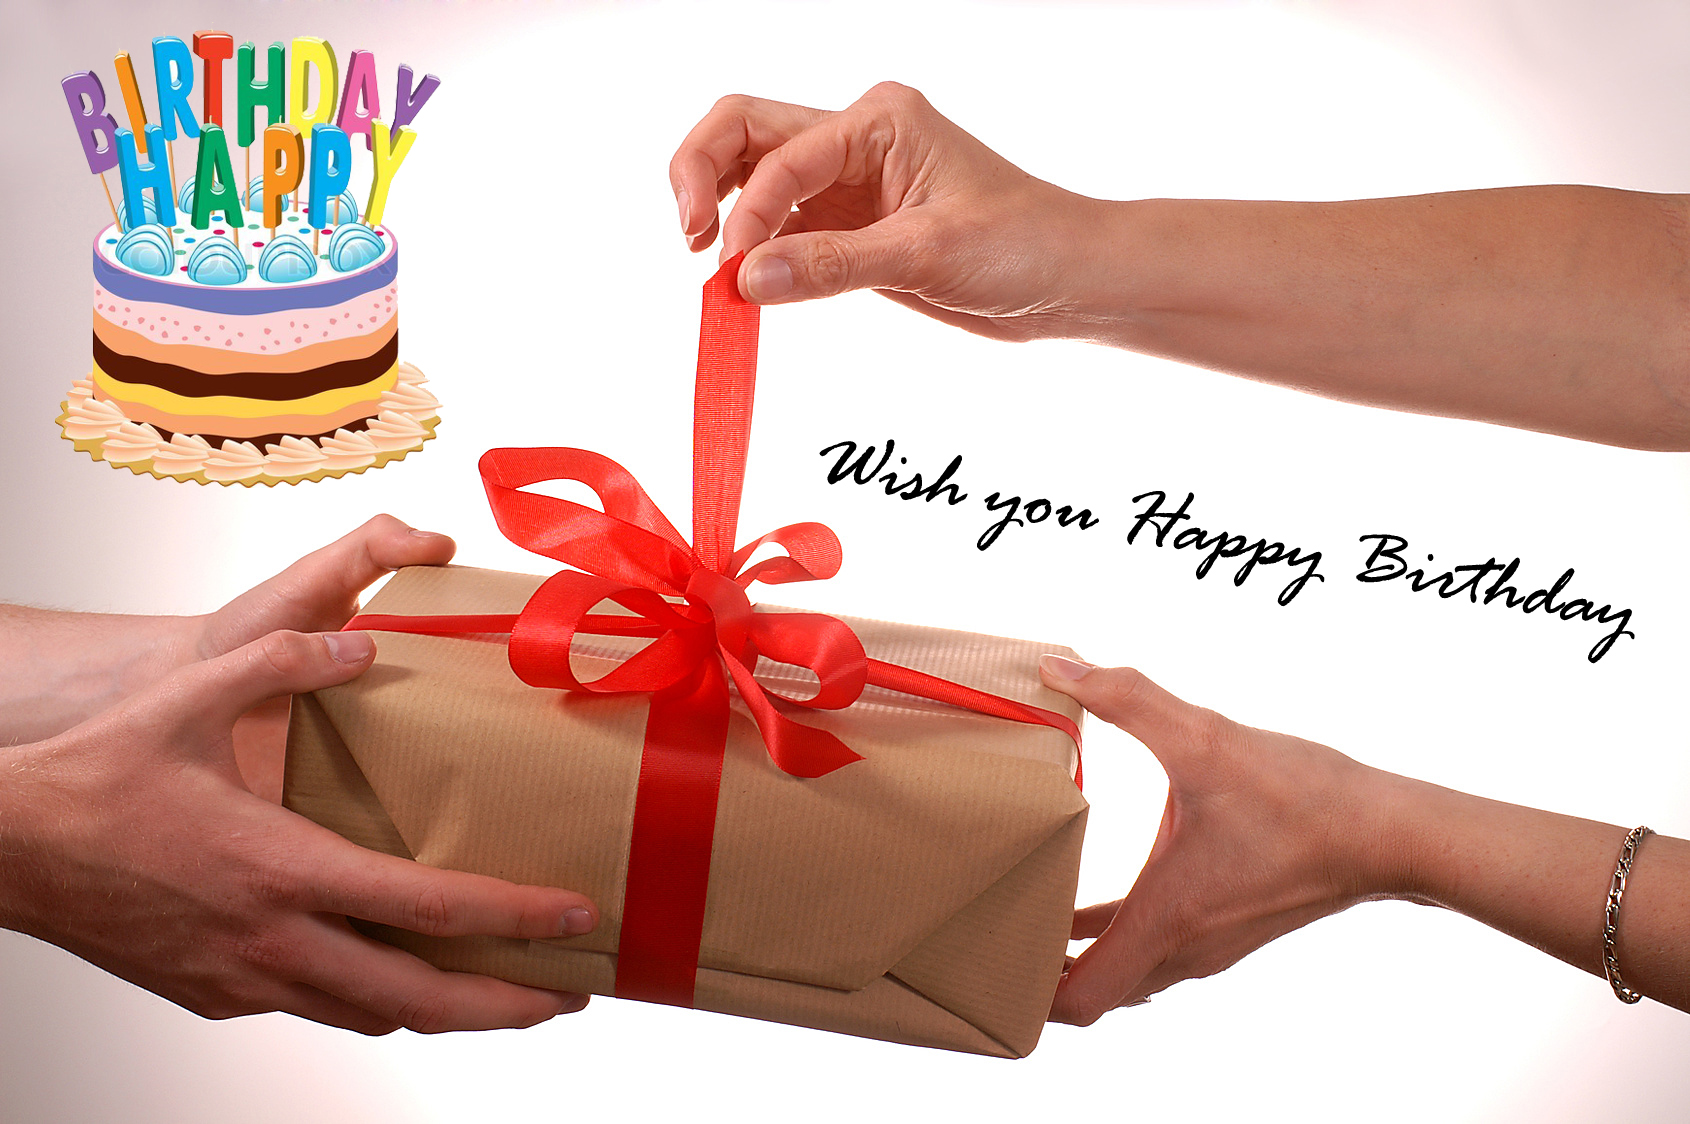 happy birthday gift photo download ; 6iy5qB7MT